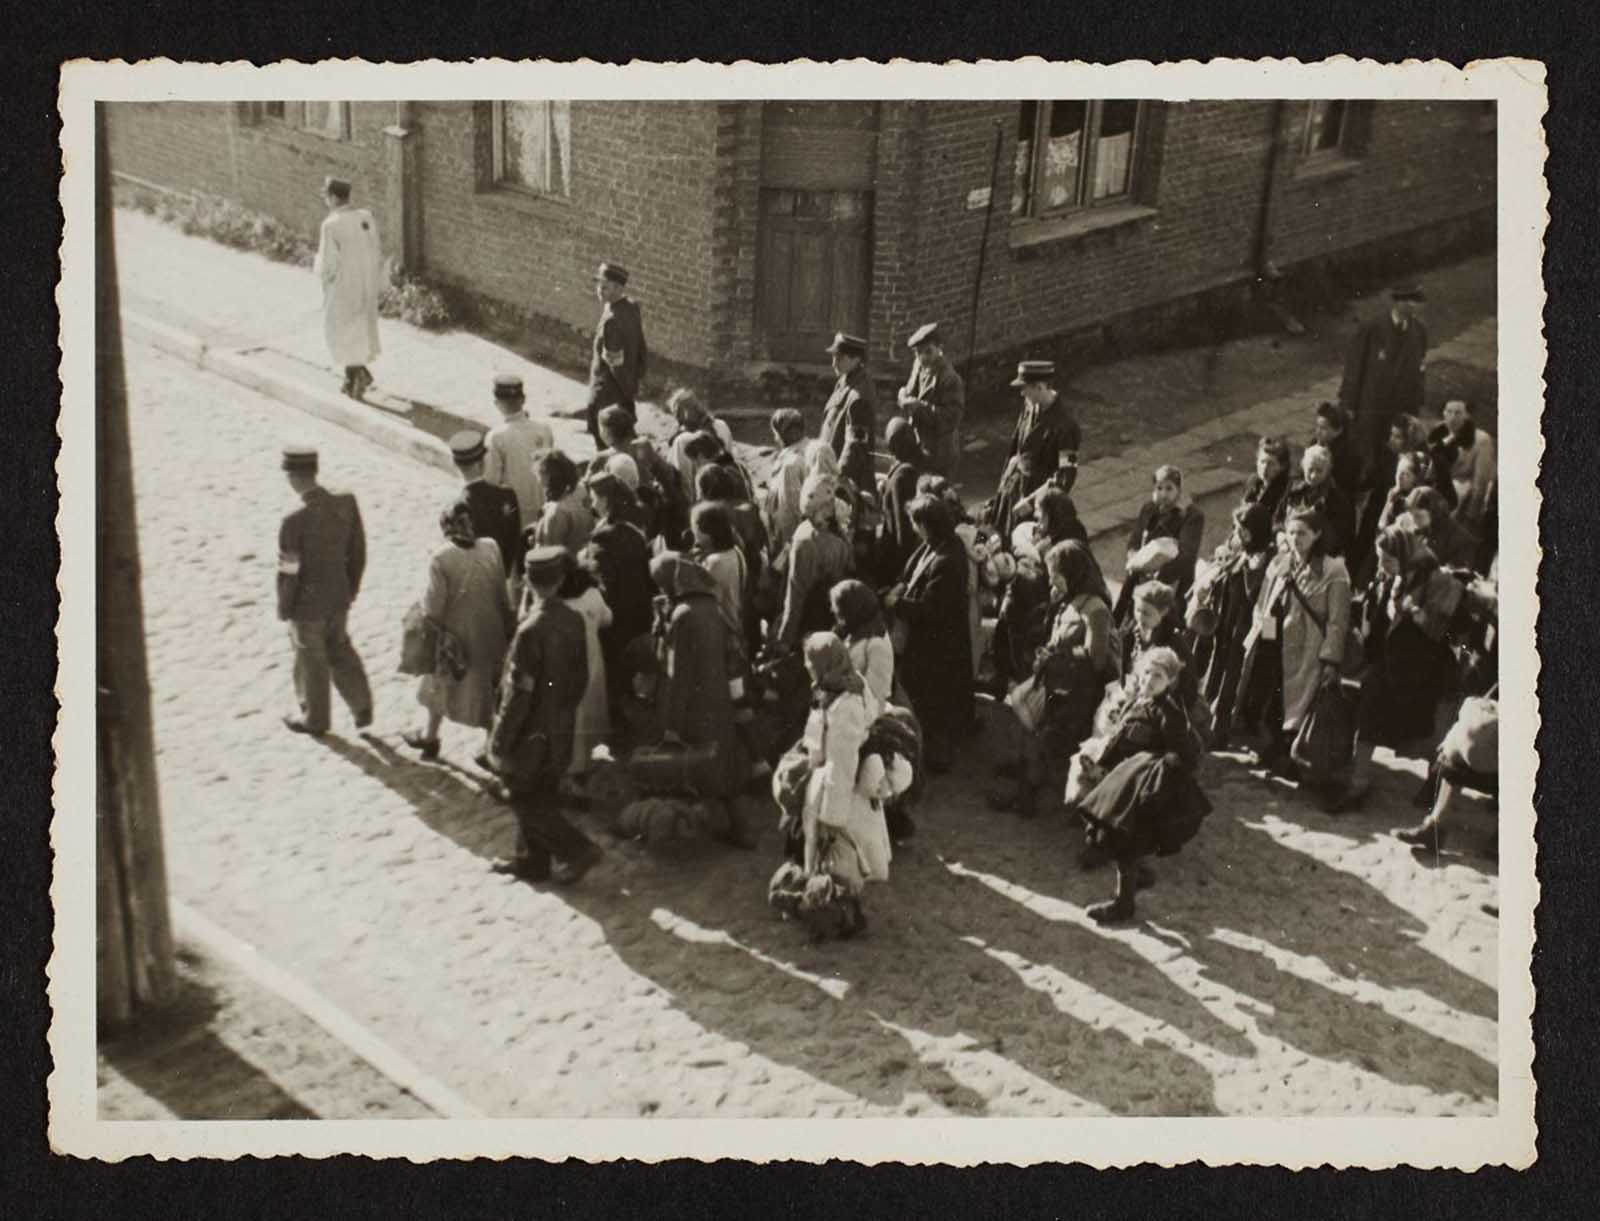 A mass deportation of ghetto residents. 1944.